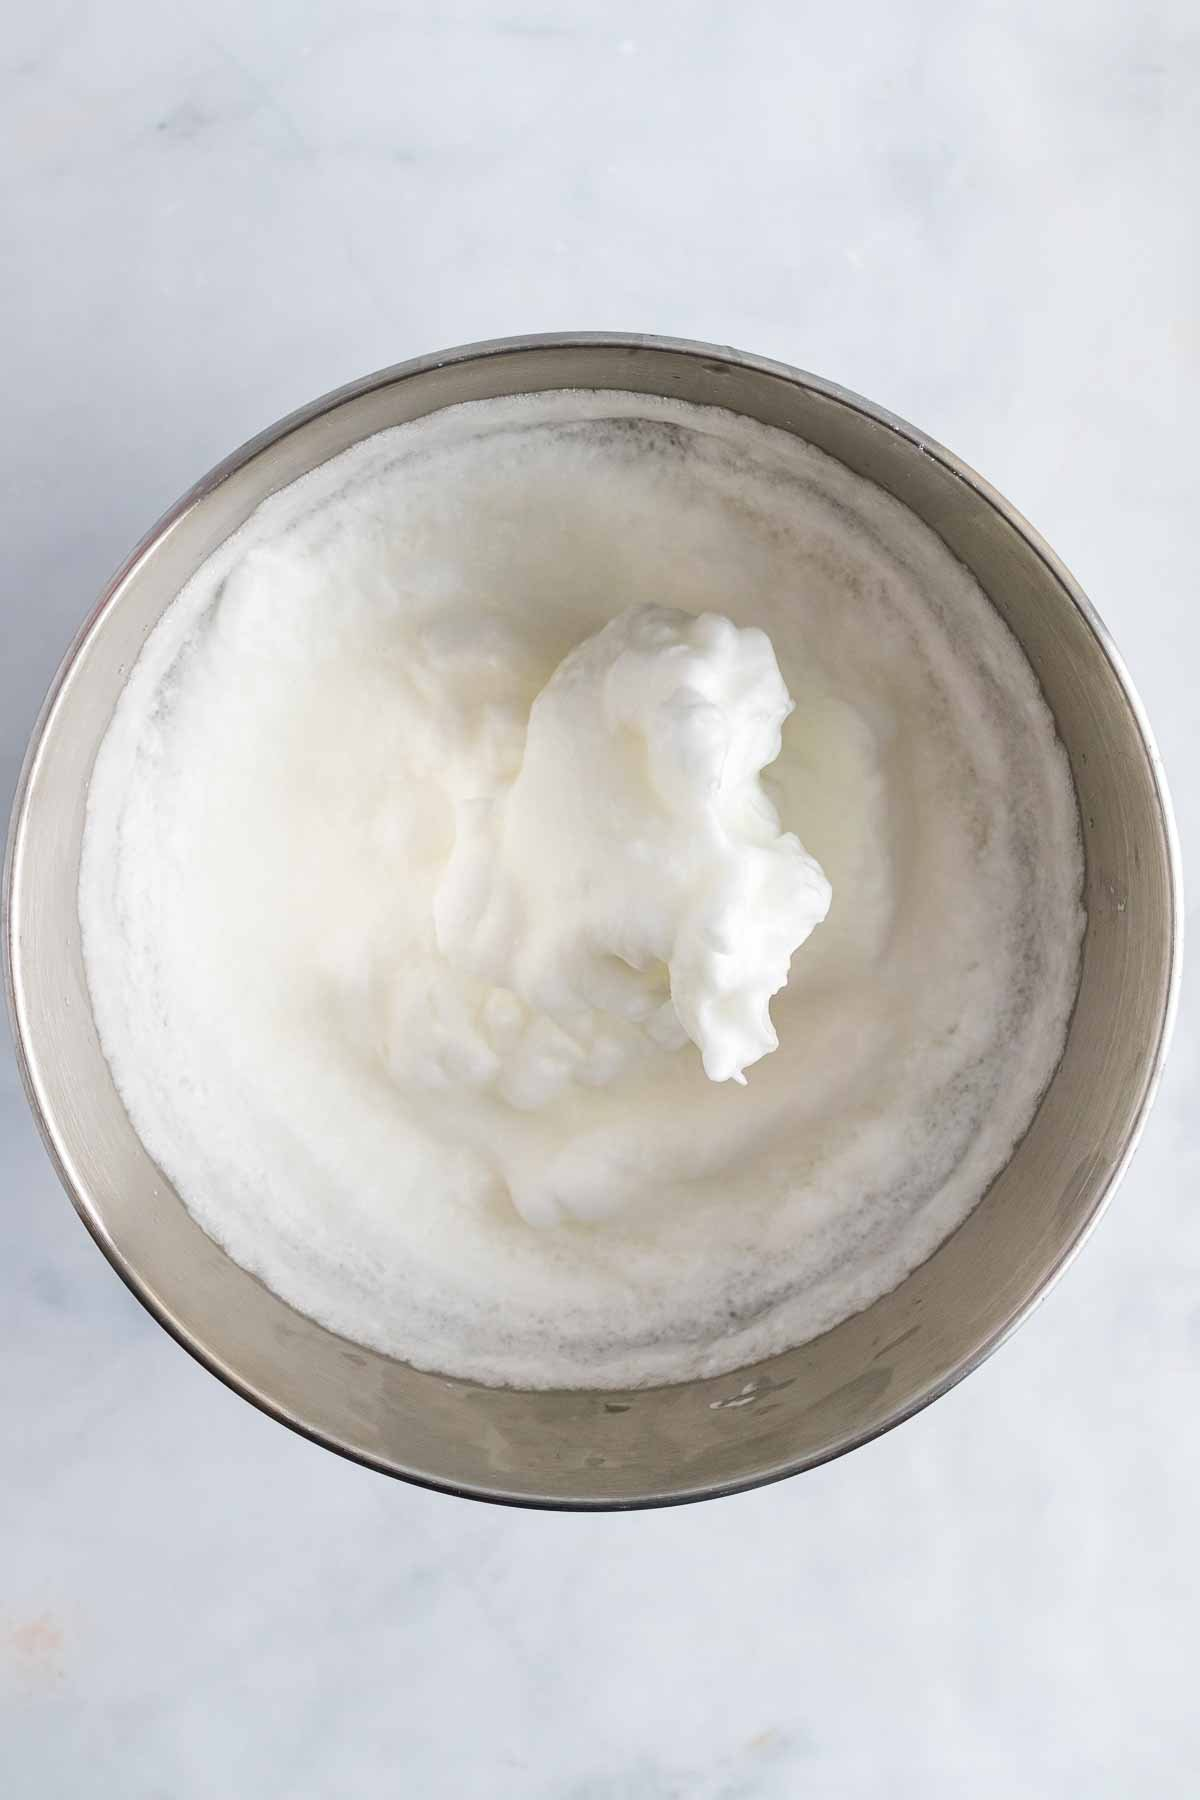 Egg whites beat into stiff peaks in a large mixing bowl, as seen from above